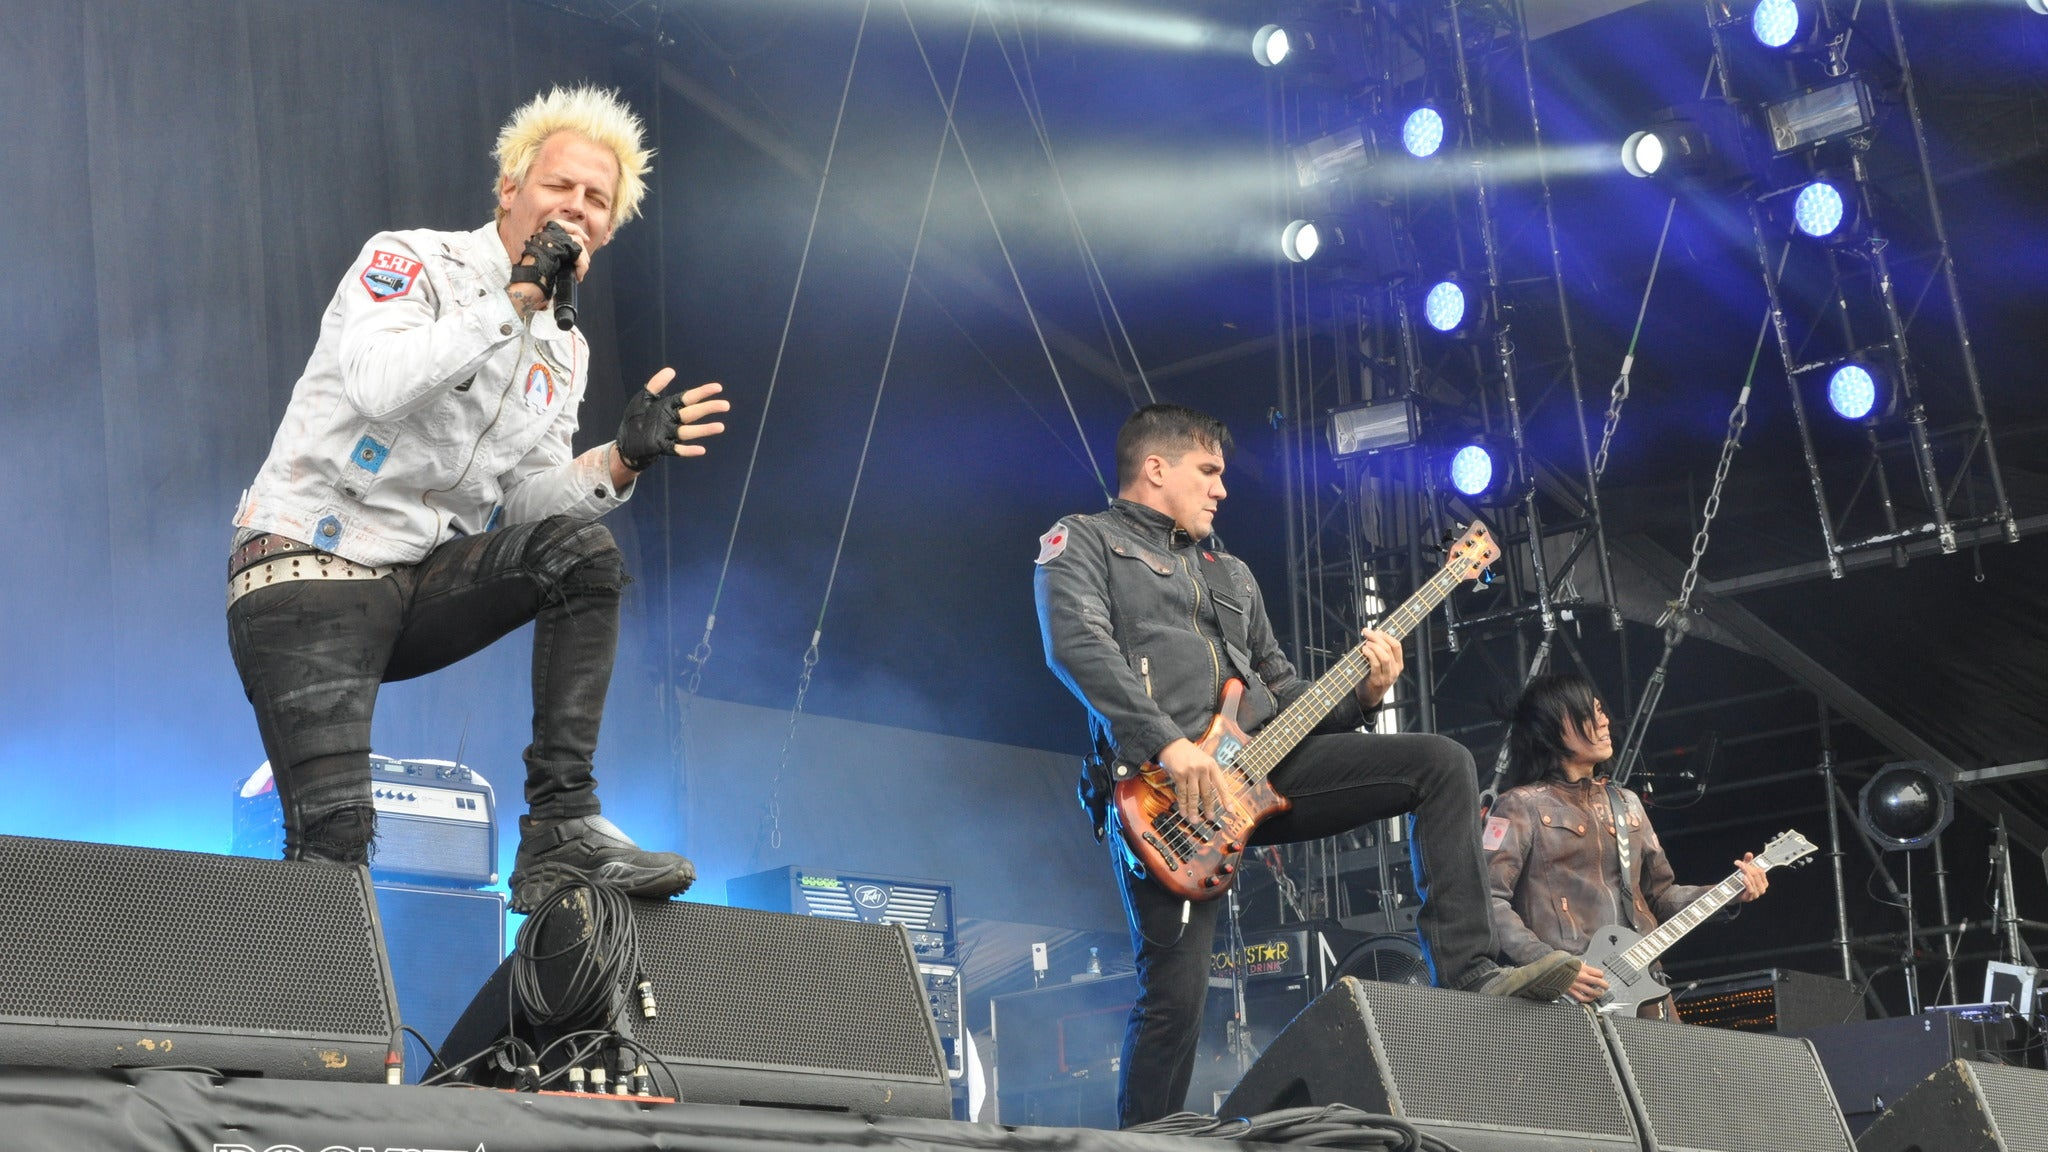 Powerman 5000: the Days of Disorder Tour 2019